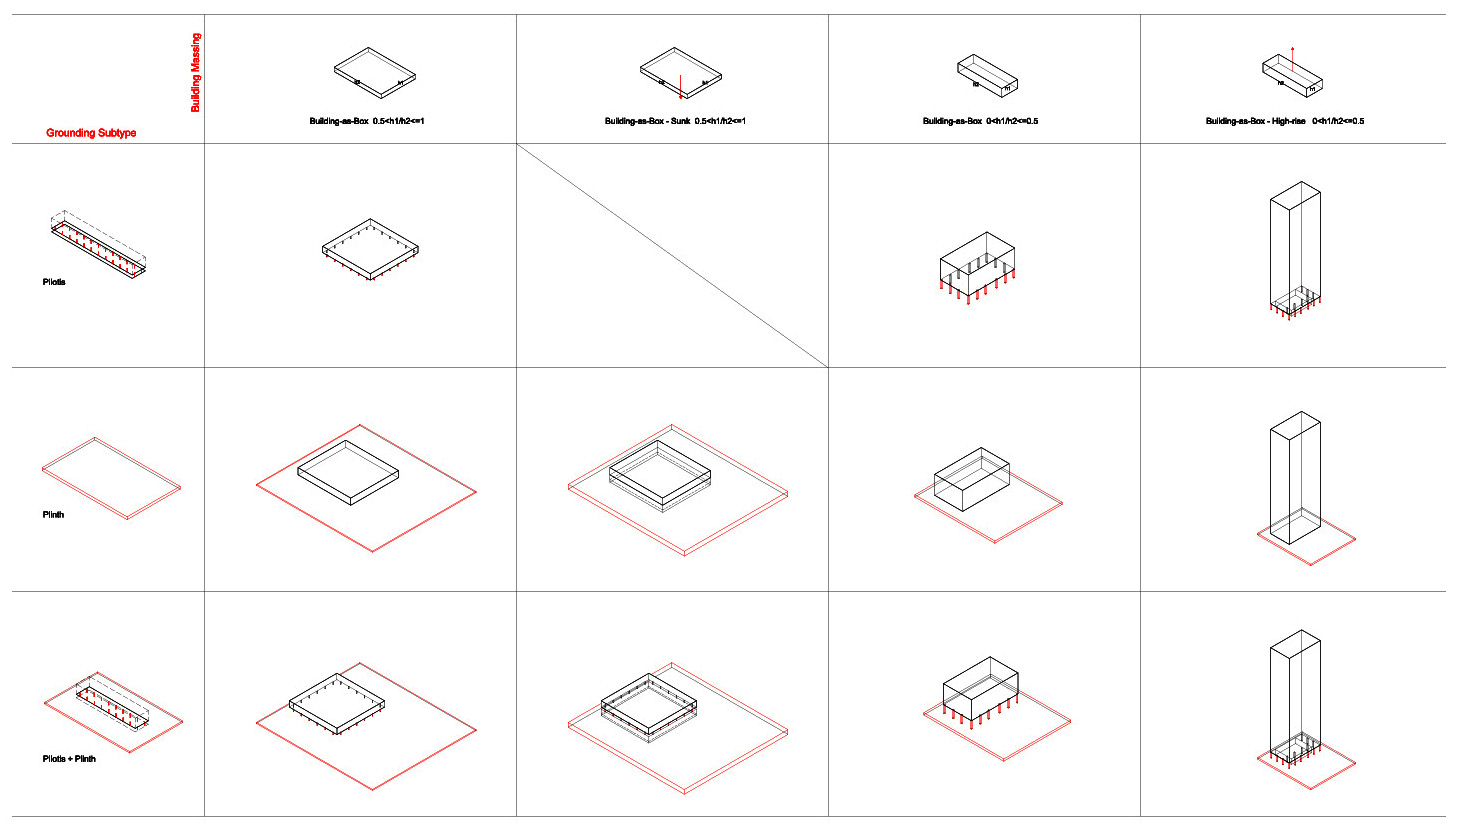 4_Typological Transformation Phase I-Subtypes from Pavilion Scenario